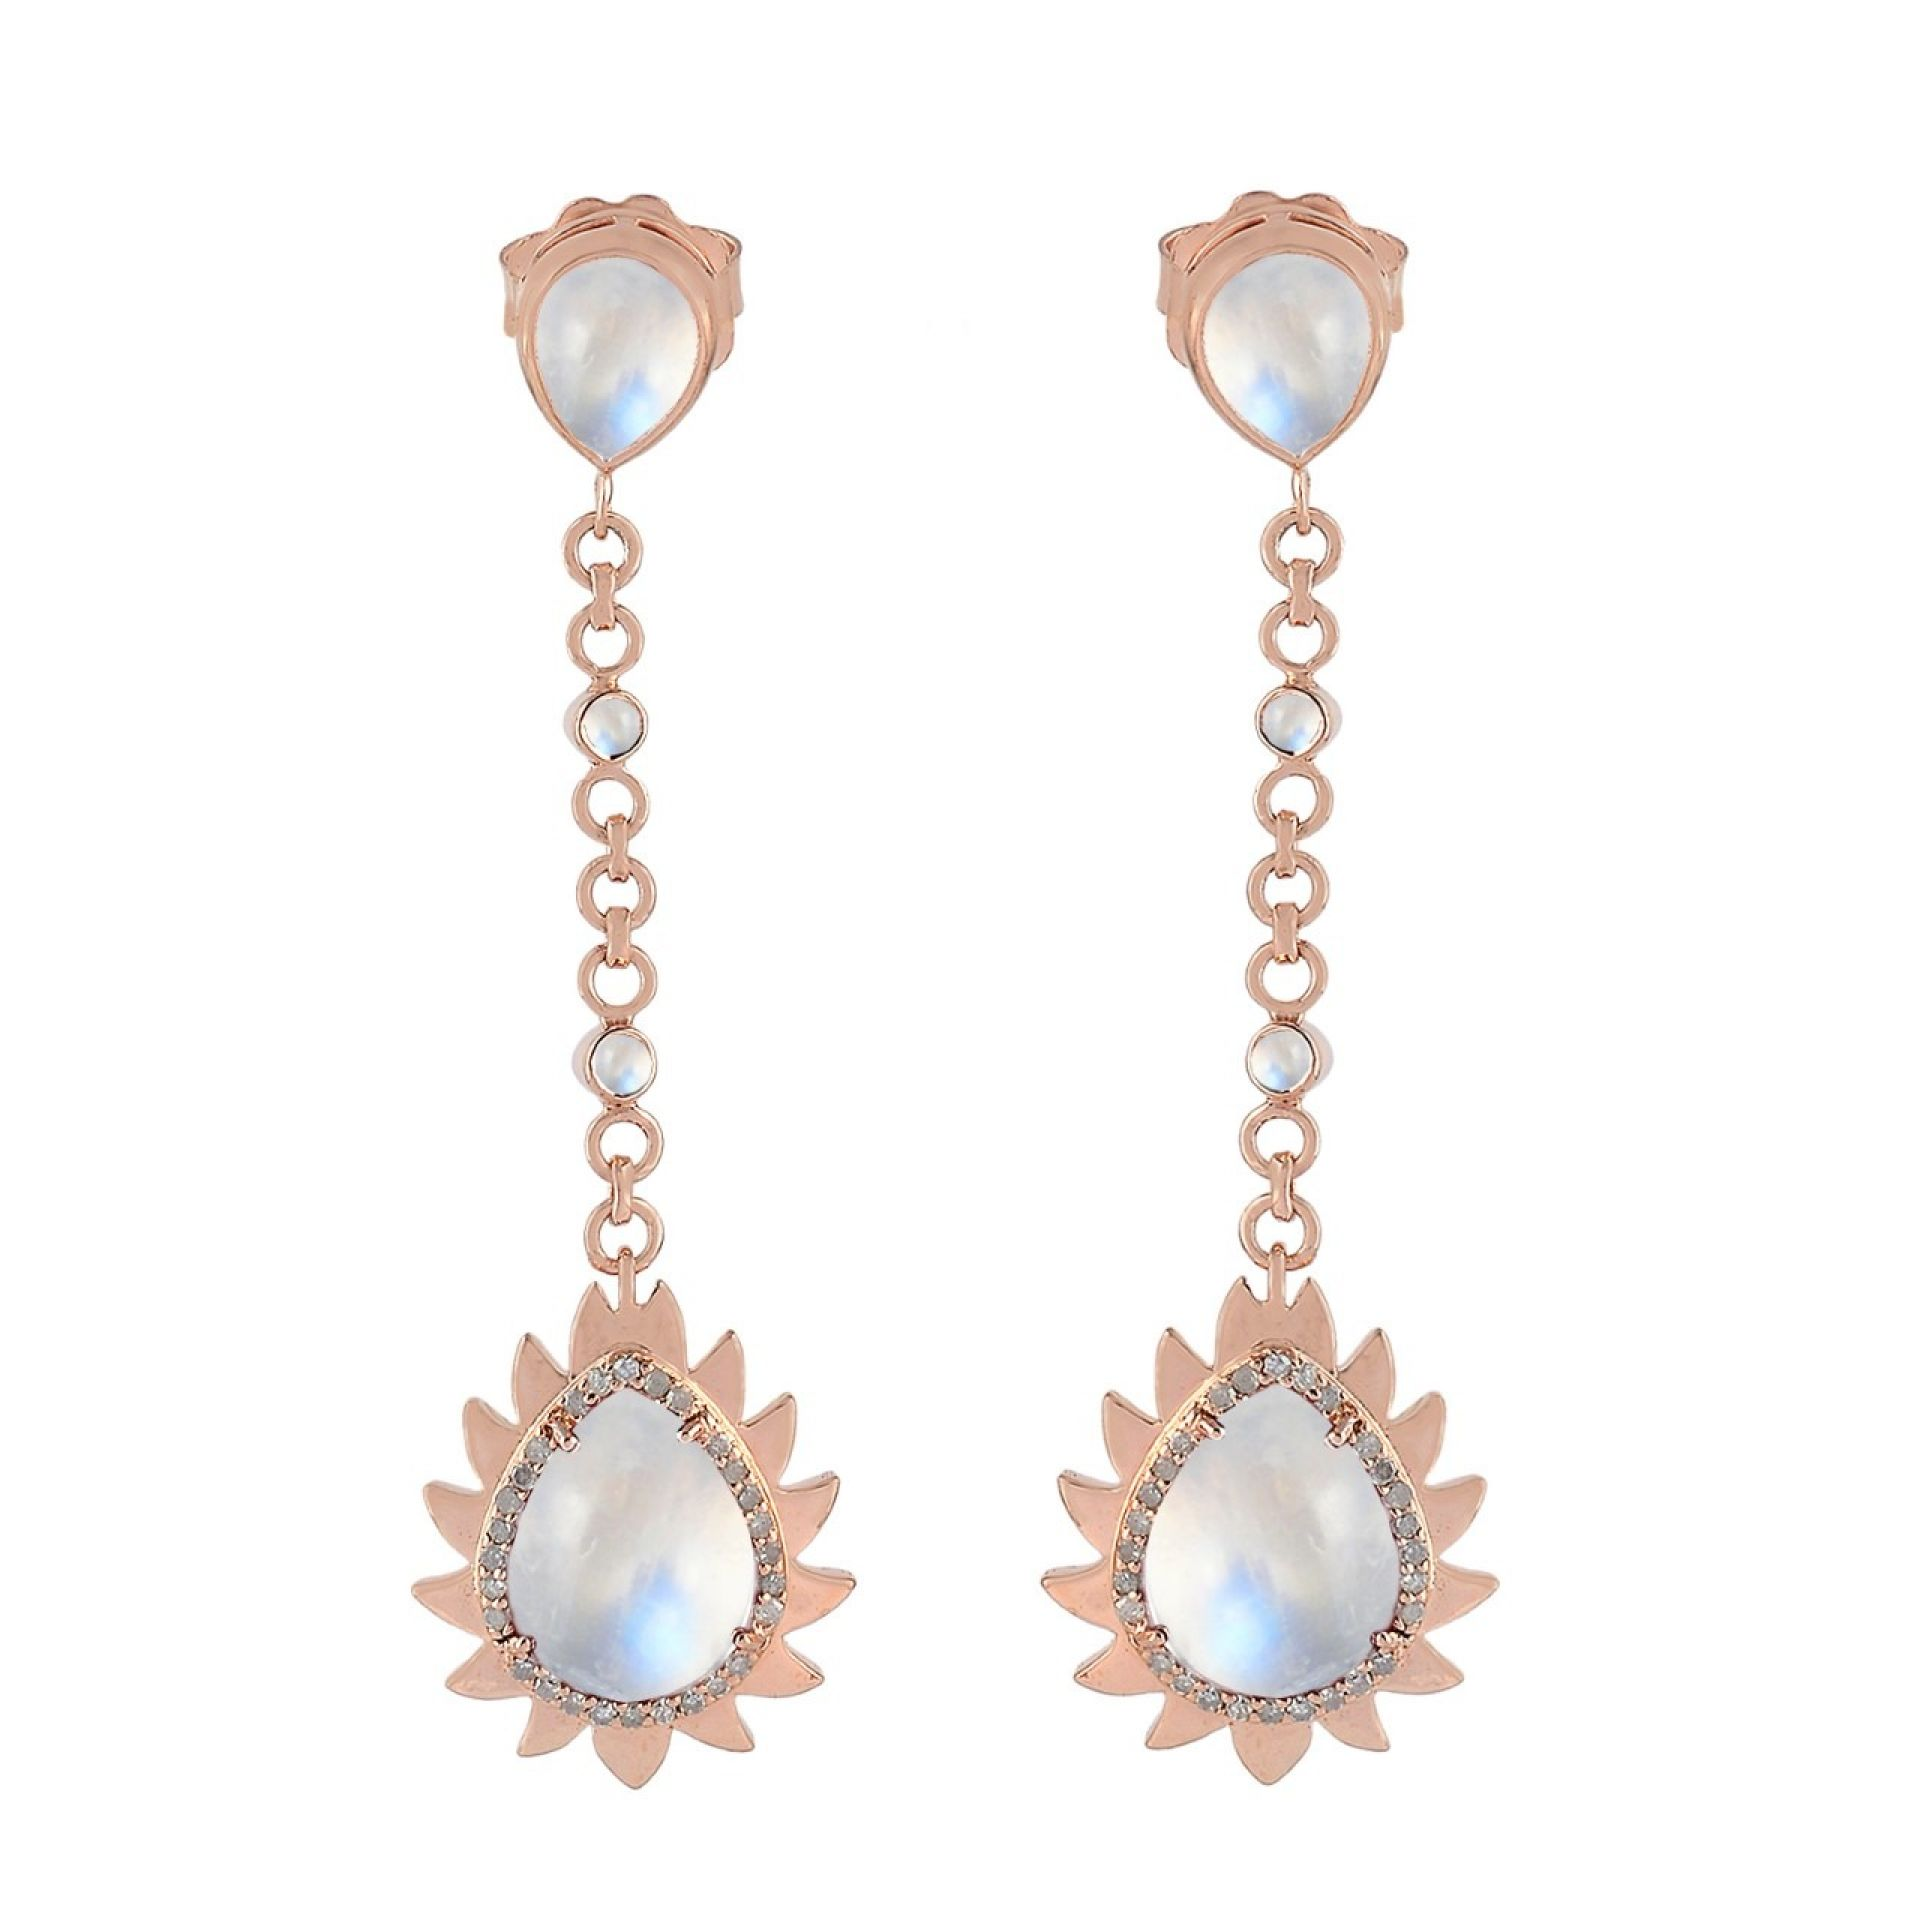 Meghna Jewels Flame Earrings Rainbow Moonstone & Diamonds